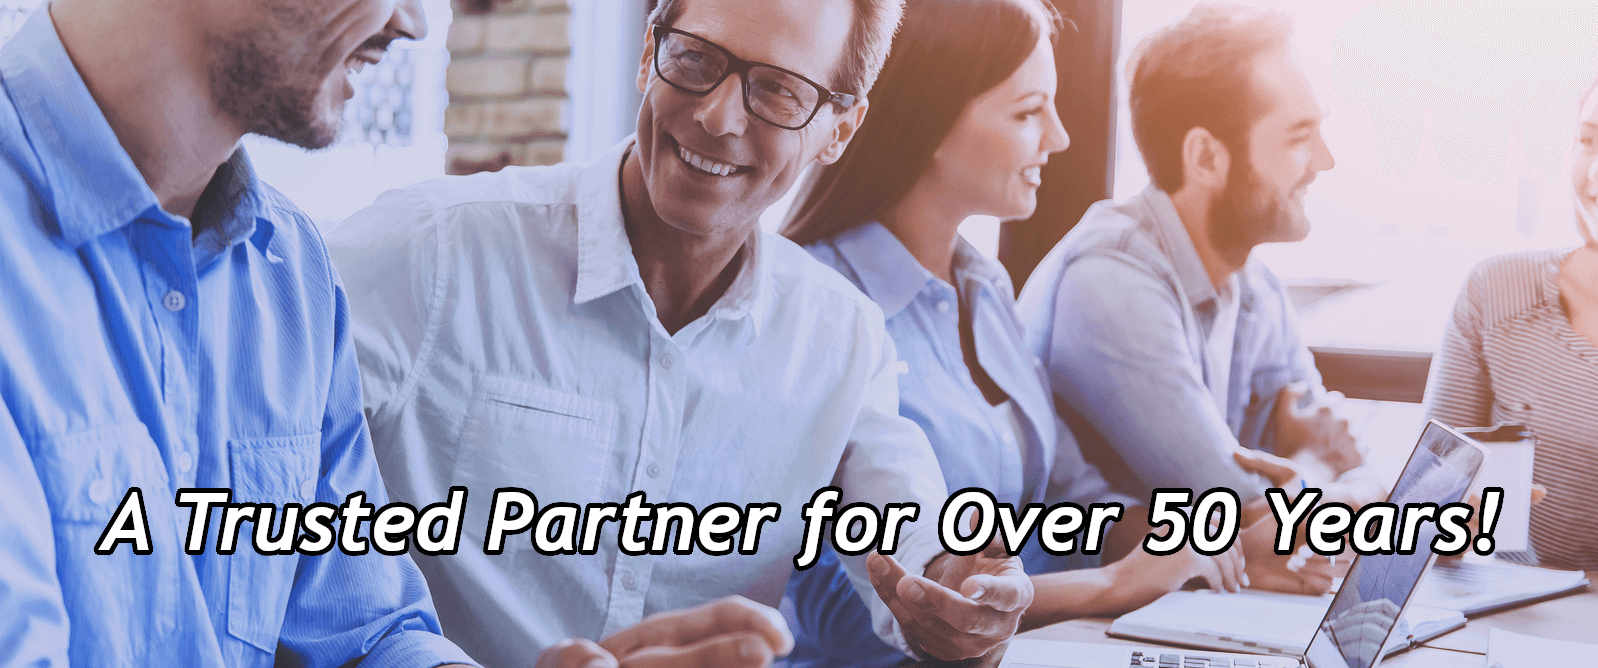 A trusted partner for over 50 years